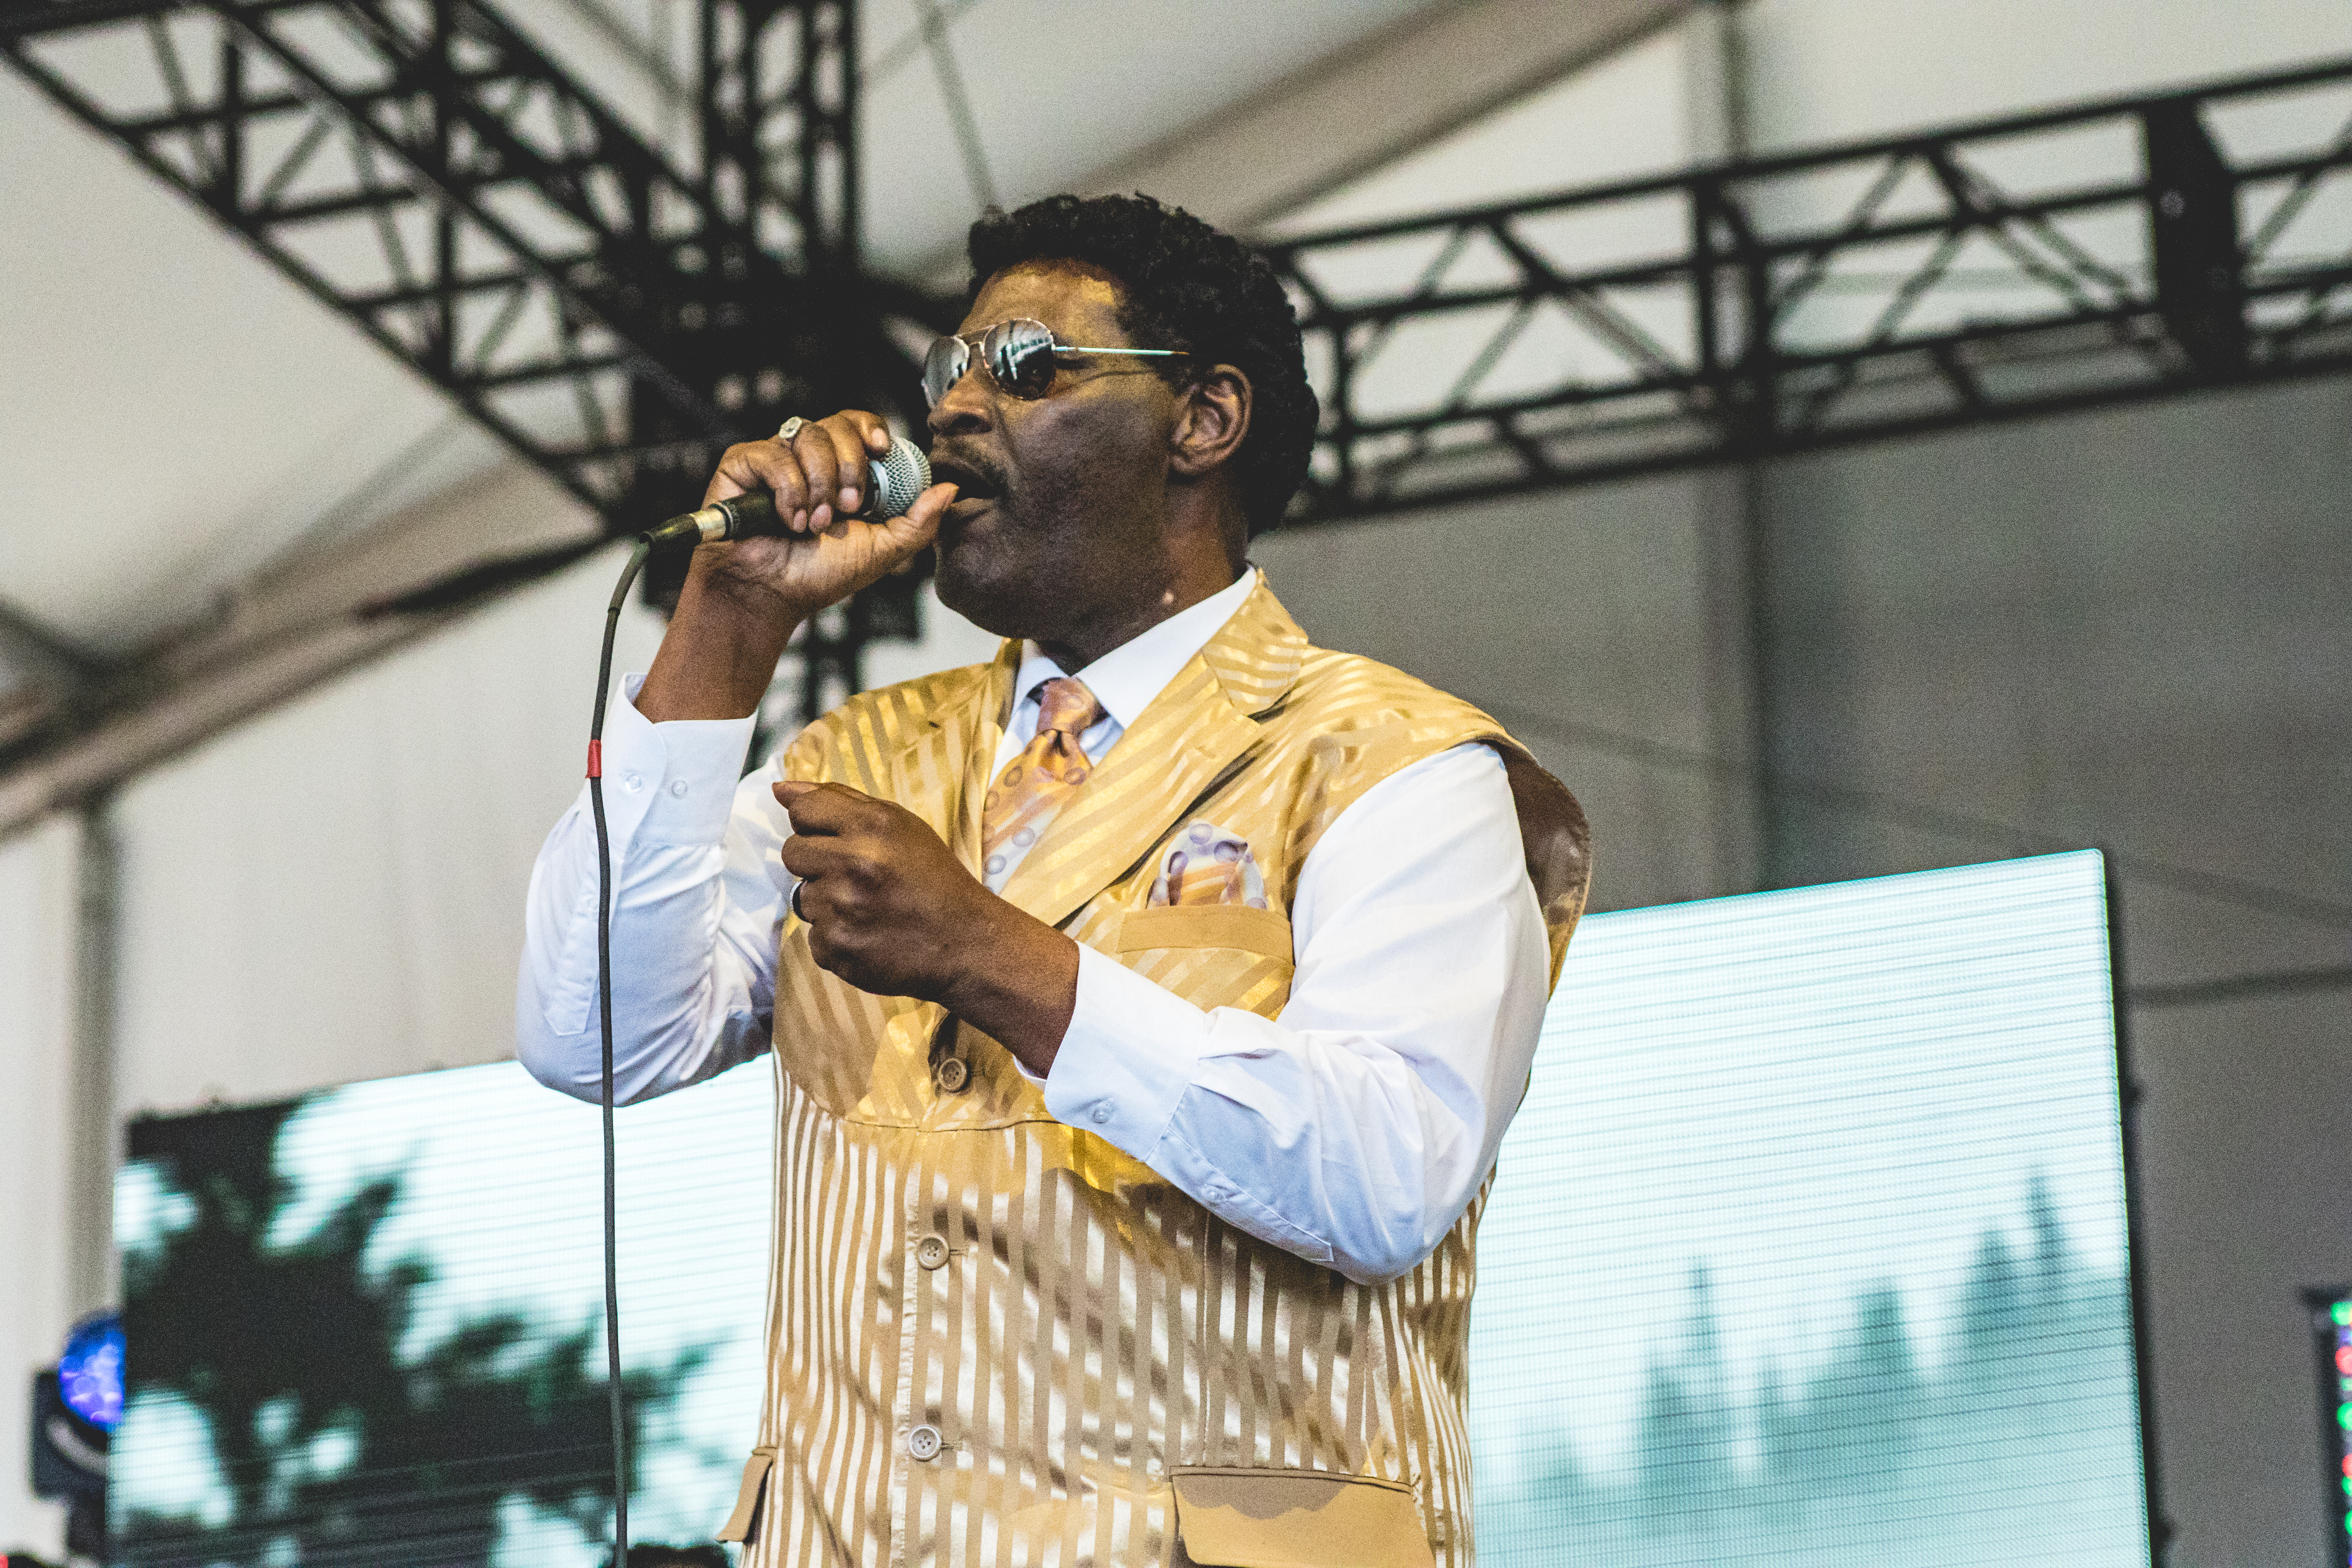 Interview The Blind Boys Alabama At Eaux ClairesPancakes And